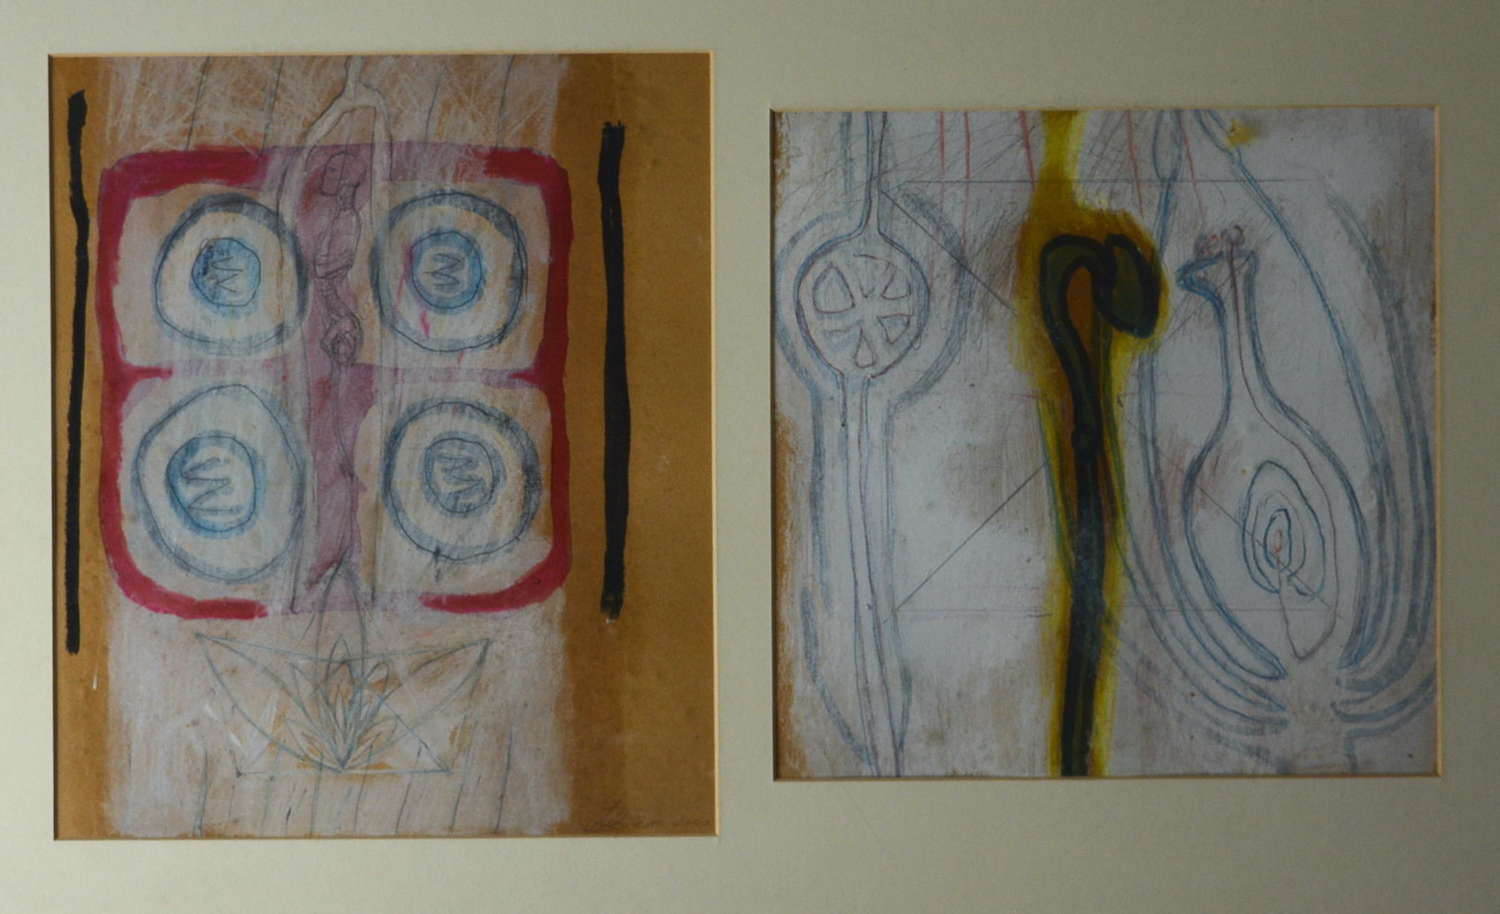 COMPOSITION OF TWO ABSTRACT STUDIES BY KAREN LORENZ